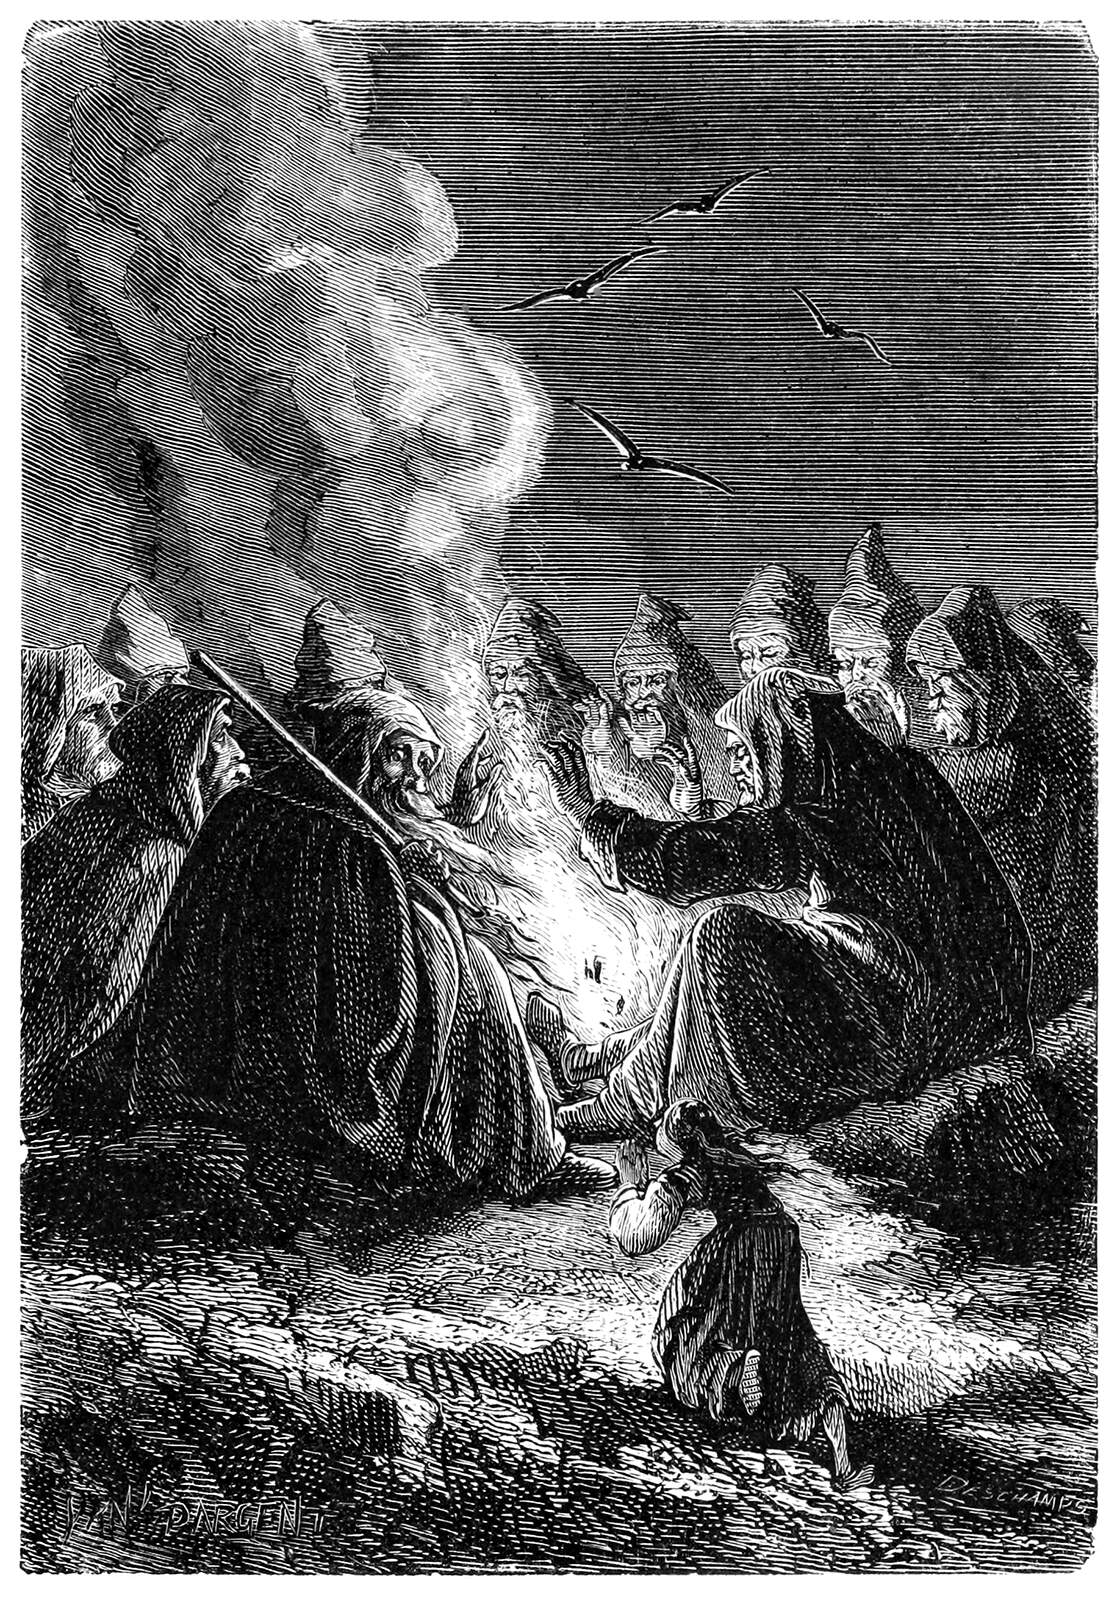 A circle of giant men gather around a fire